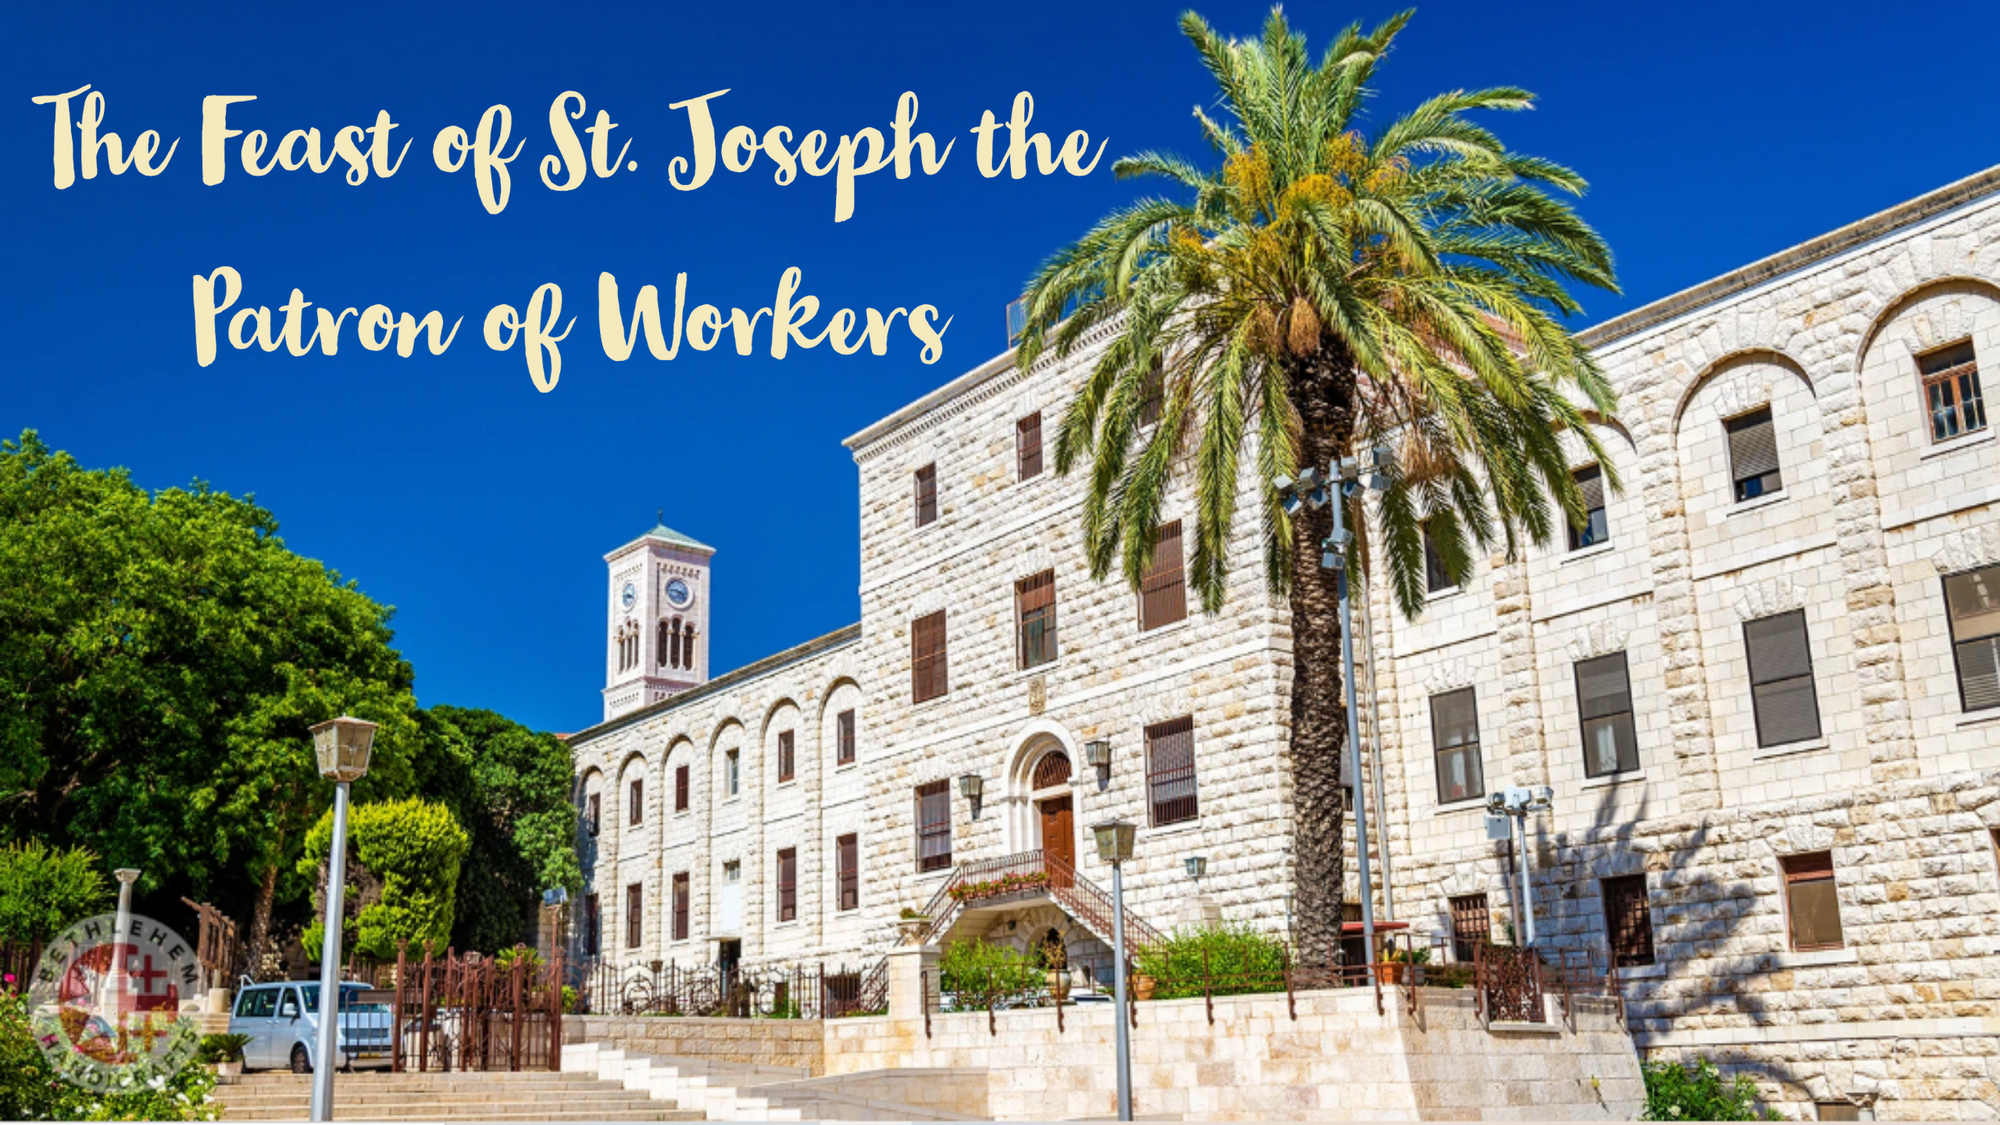 The Feast of St. Joseph the Patron of Workers